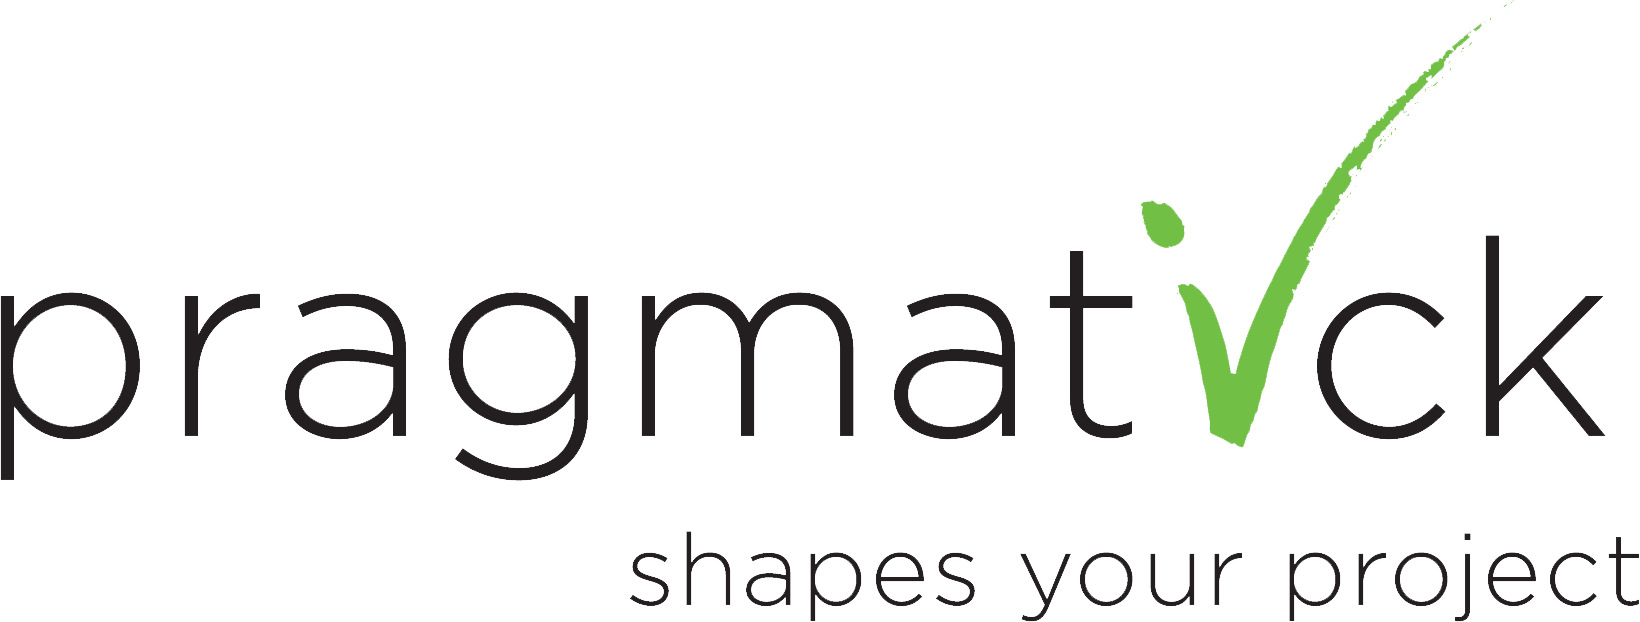 Pragmatick Peter Erni, Ruswil - shapes your project